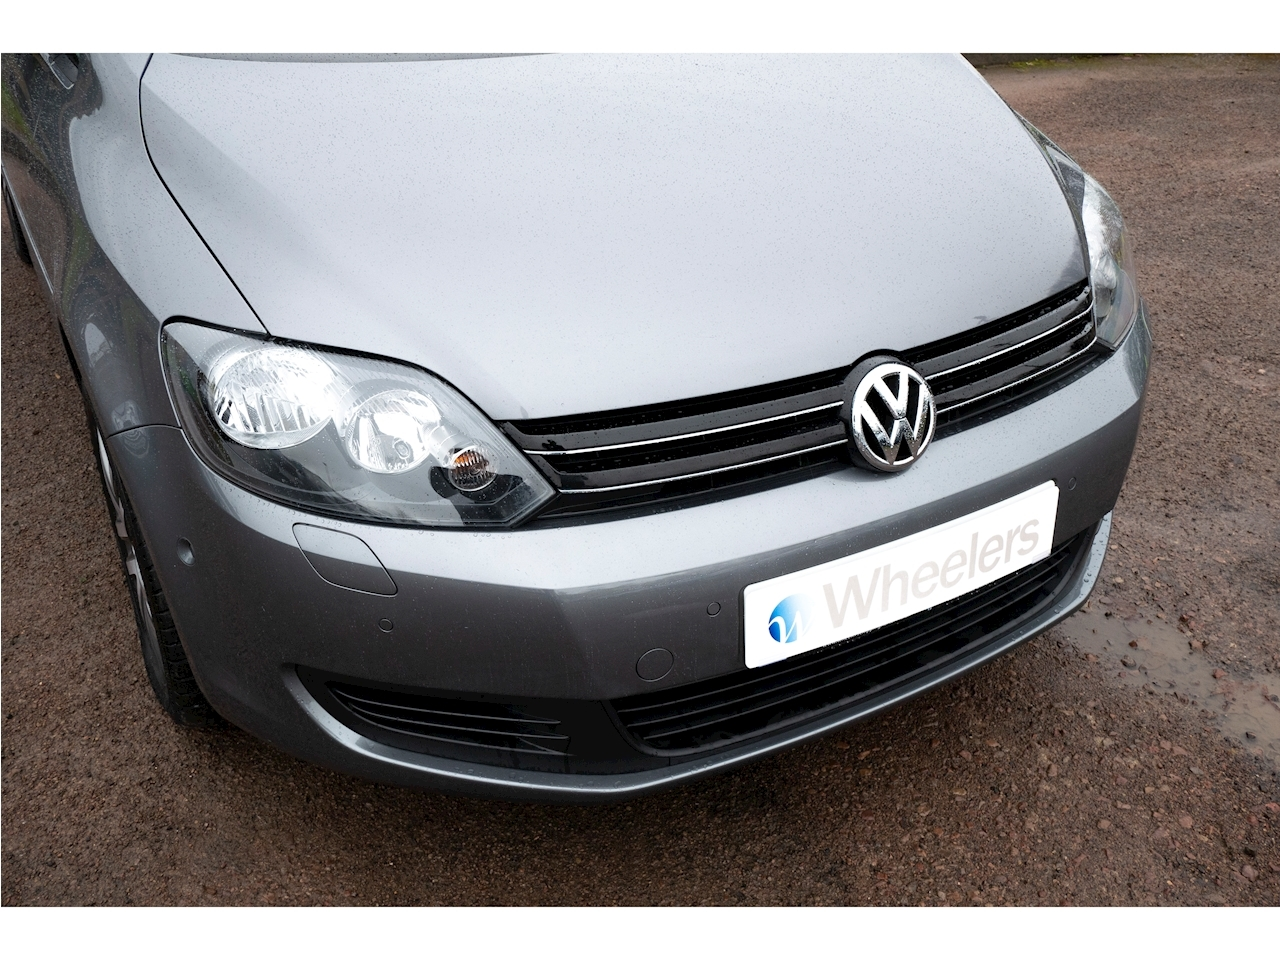 Volkswagen Golf Plus Se Tsi Hatchback 1.4 Manual Petrol